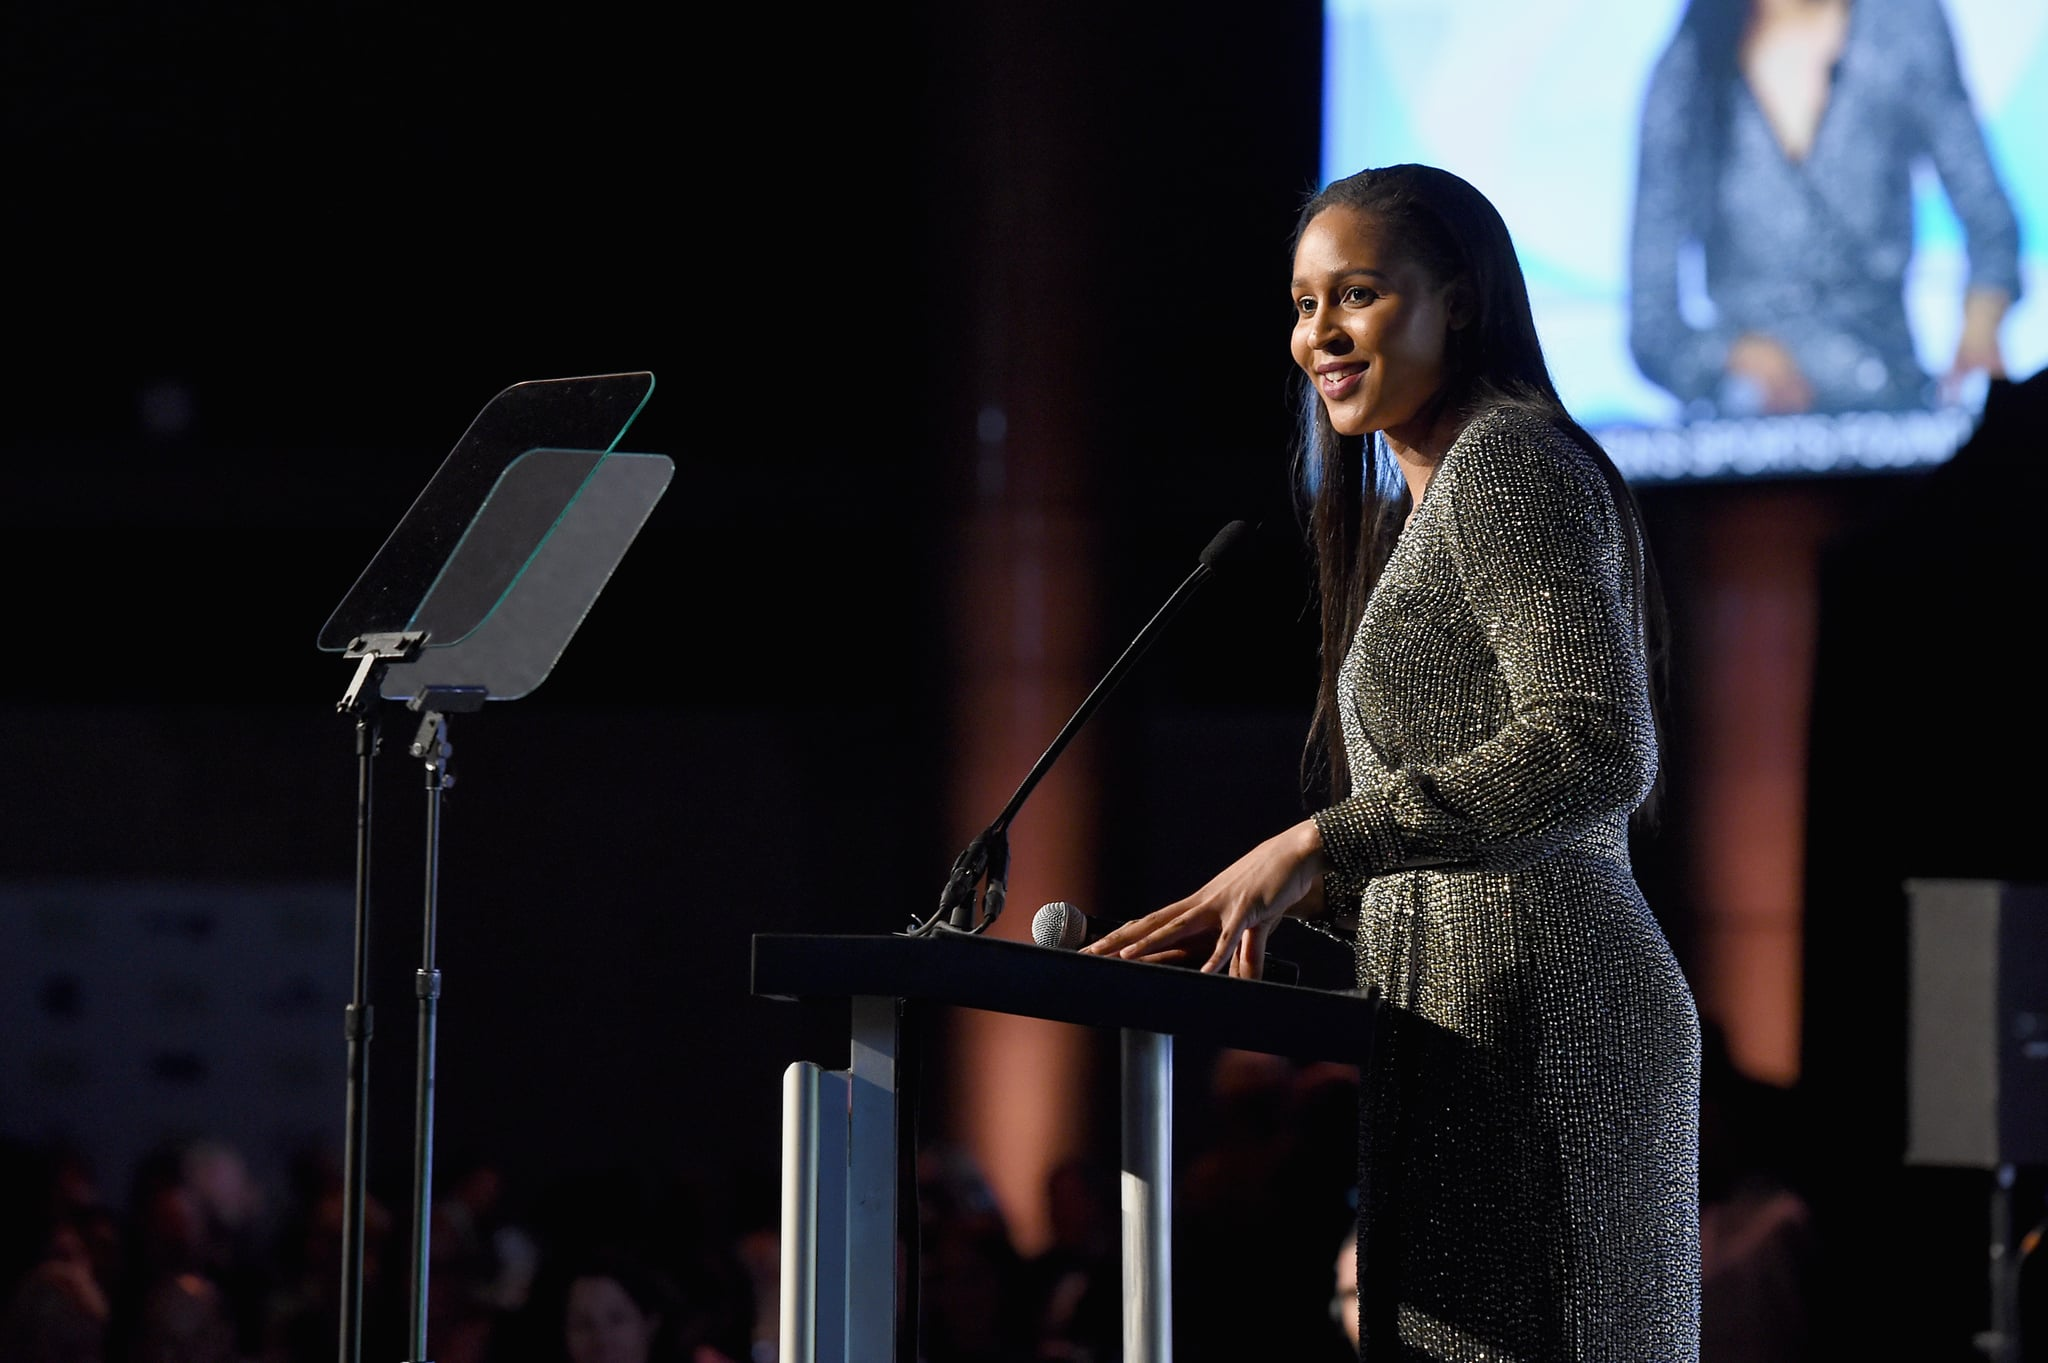 NEW YORK, NY - OCTOBER 18:  Winner of the Sportswoman of the Year in a team sport, Maya Moore, receives her award onstage at The Women's Sports Foundation's 38th Annual Salute To Women in Sports Awards Gala on October 18, 2017 in New York City.  (Photo by Nicholas Hunt/Getty Images for Women's Sports Foundation)